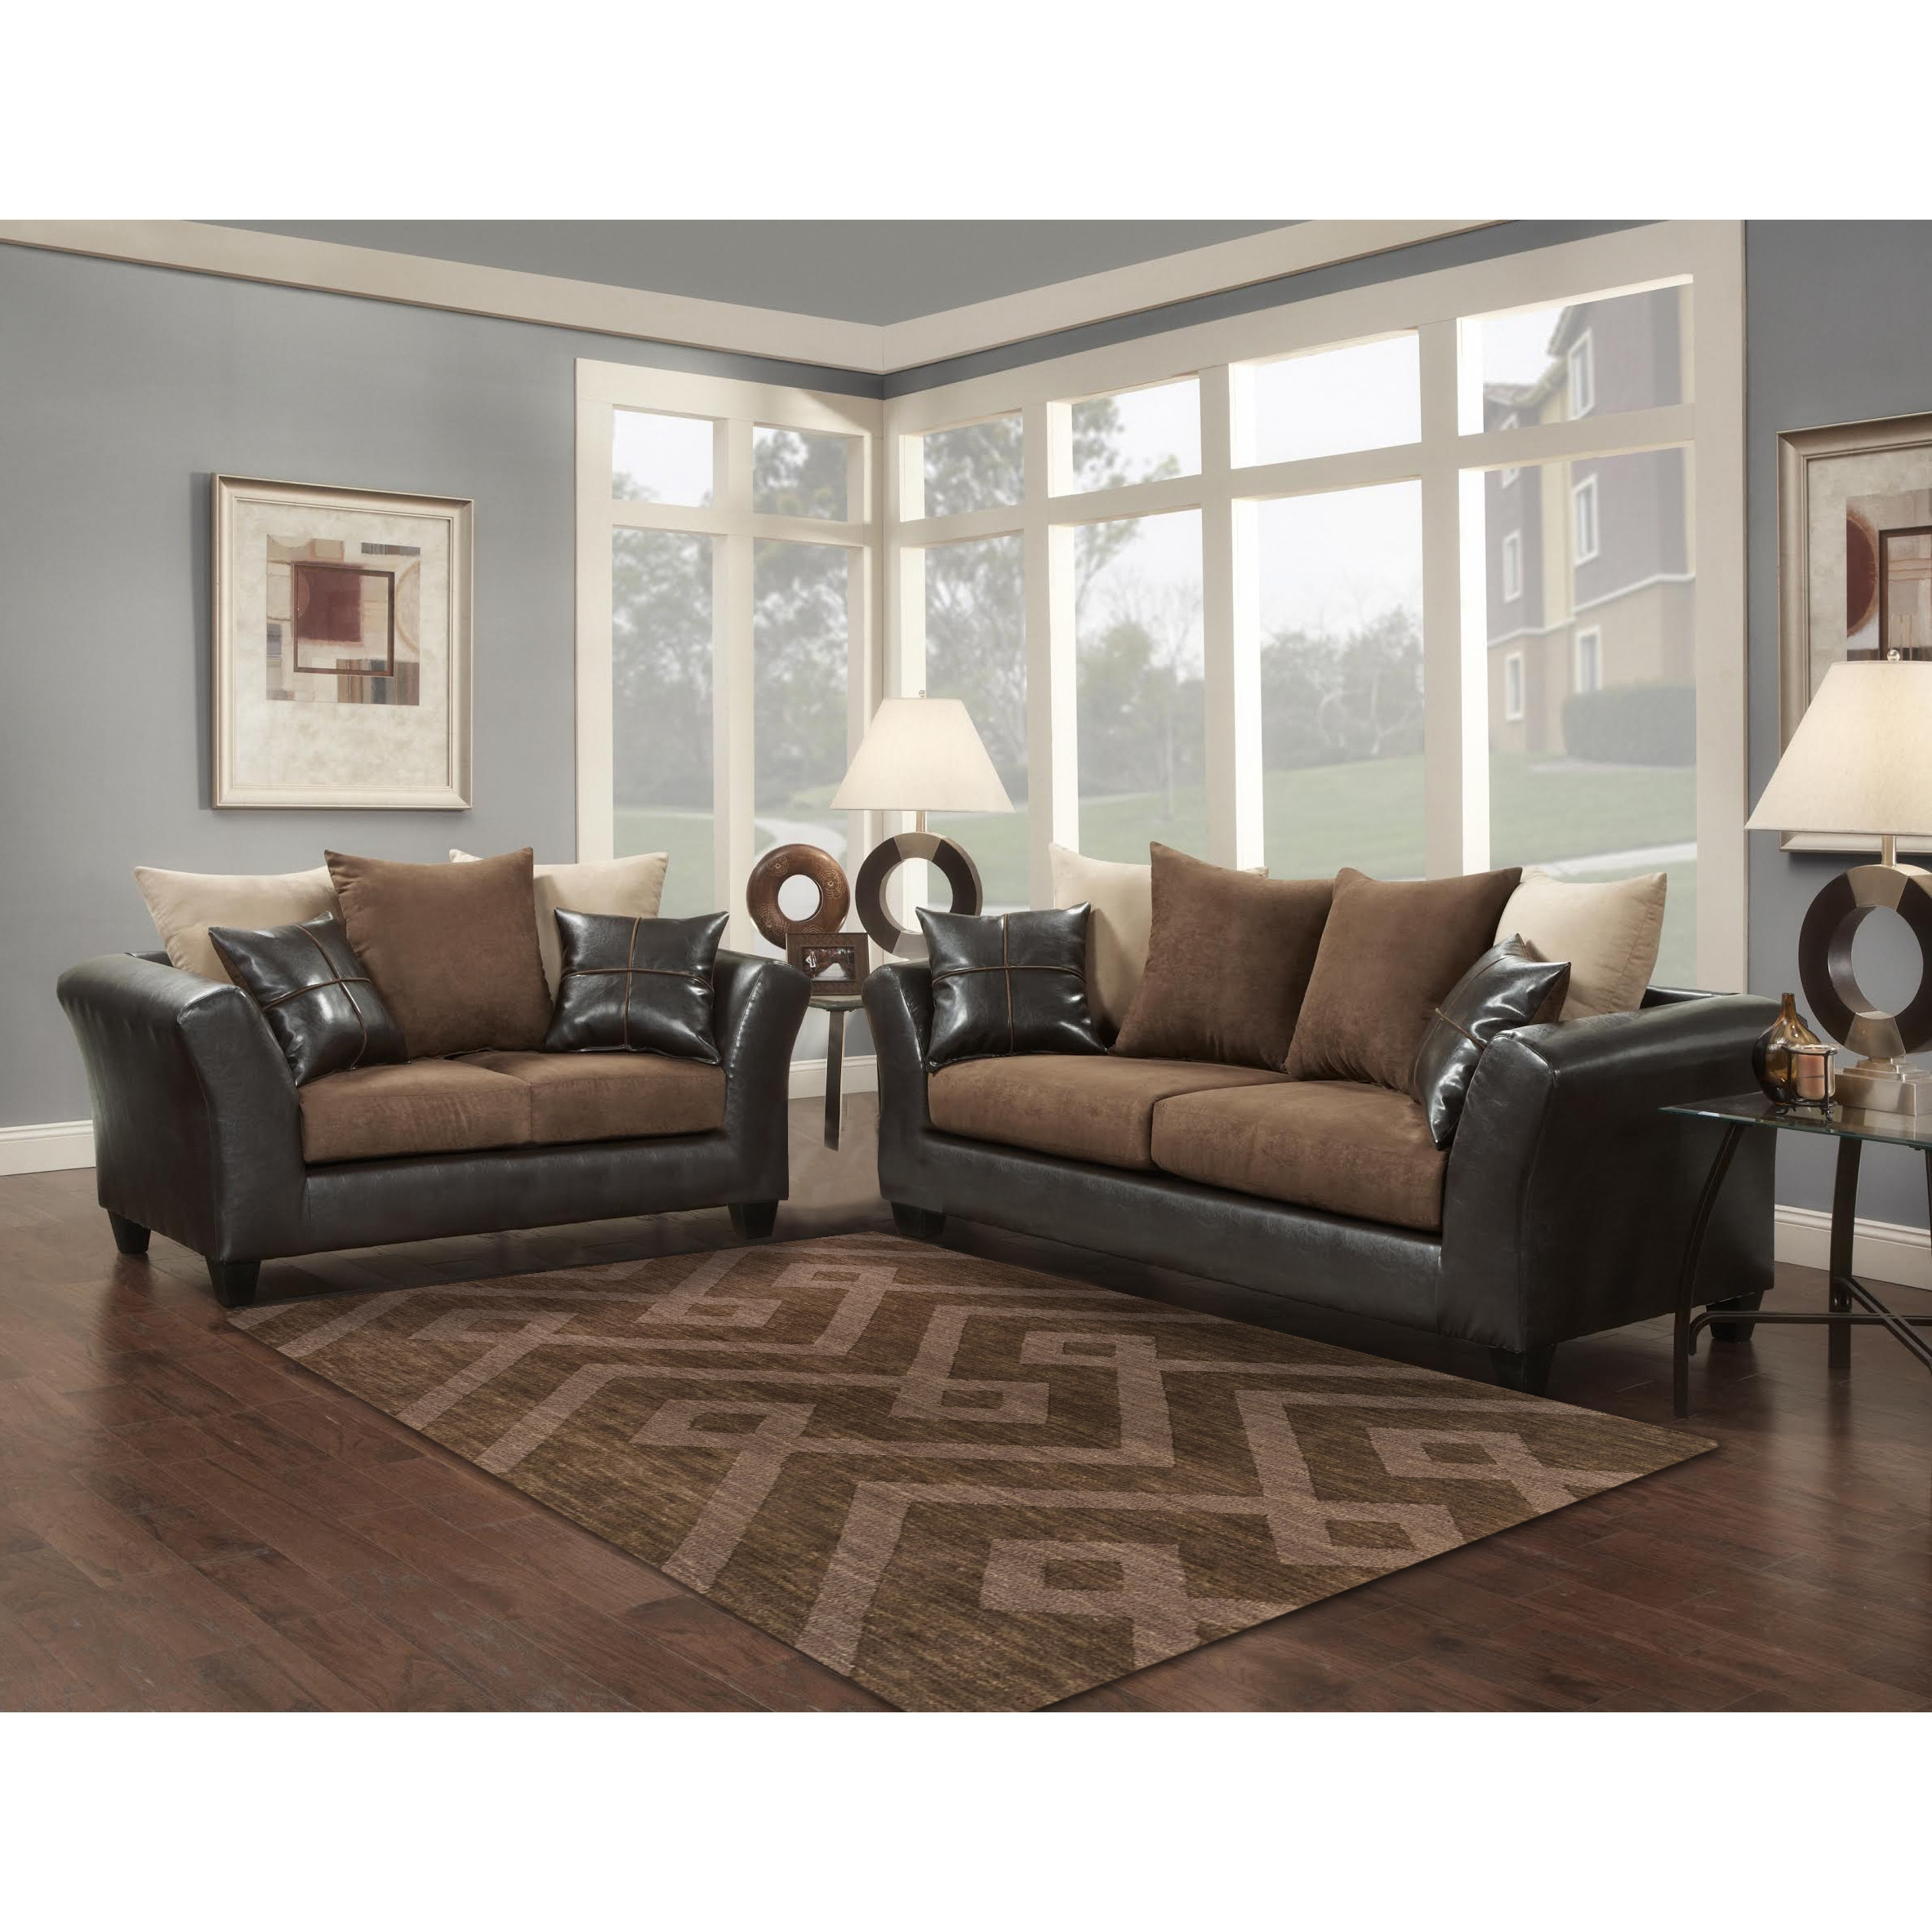 Braxton Sectional Sofa Reviews Menzilperde In 6 Of 12